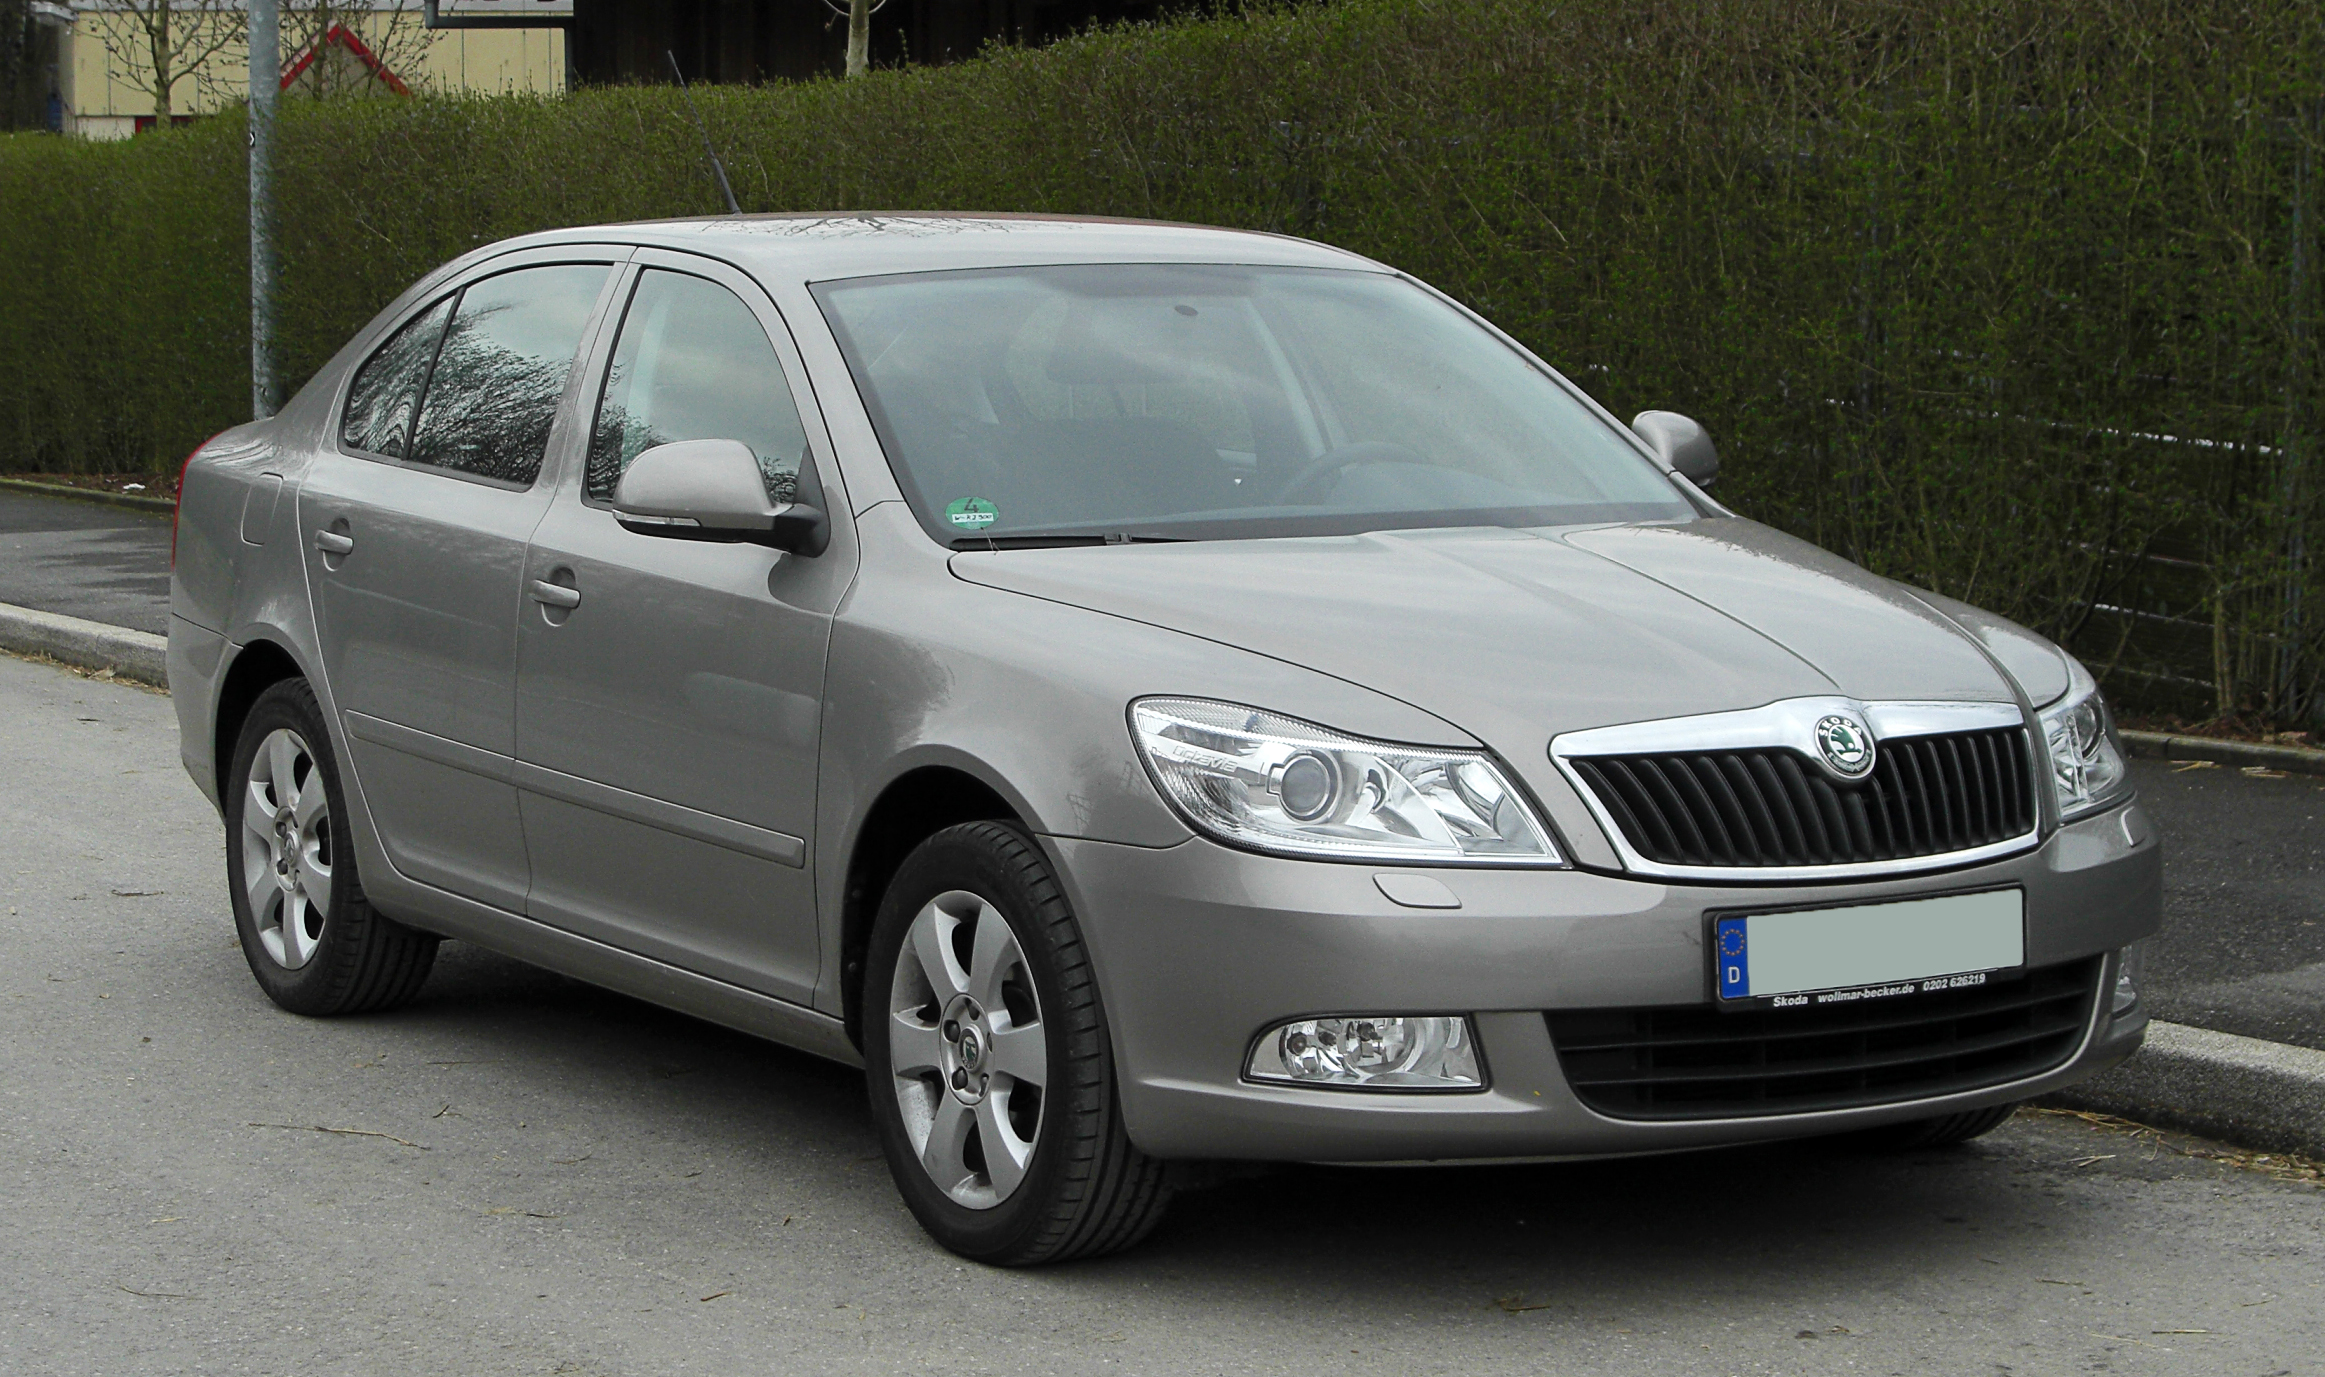 file skoda octavia tdi ii facelift frontansicht 1. Black Bedroom Furniture Sets. Home Design Ideas